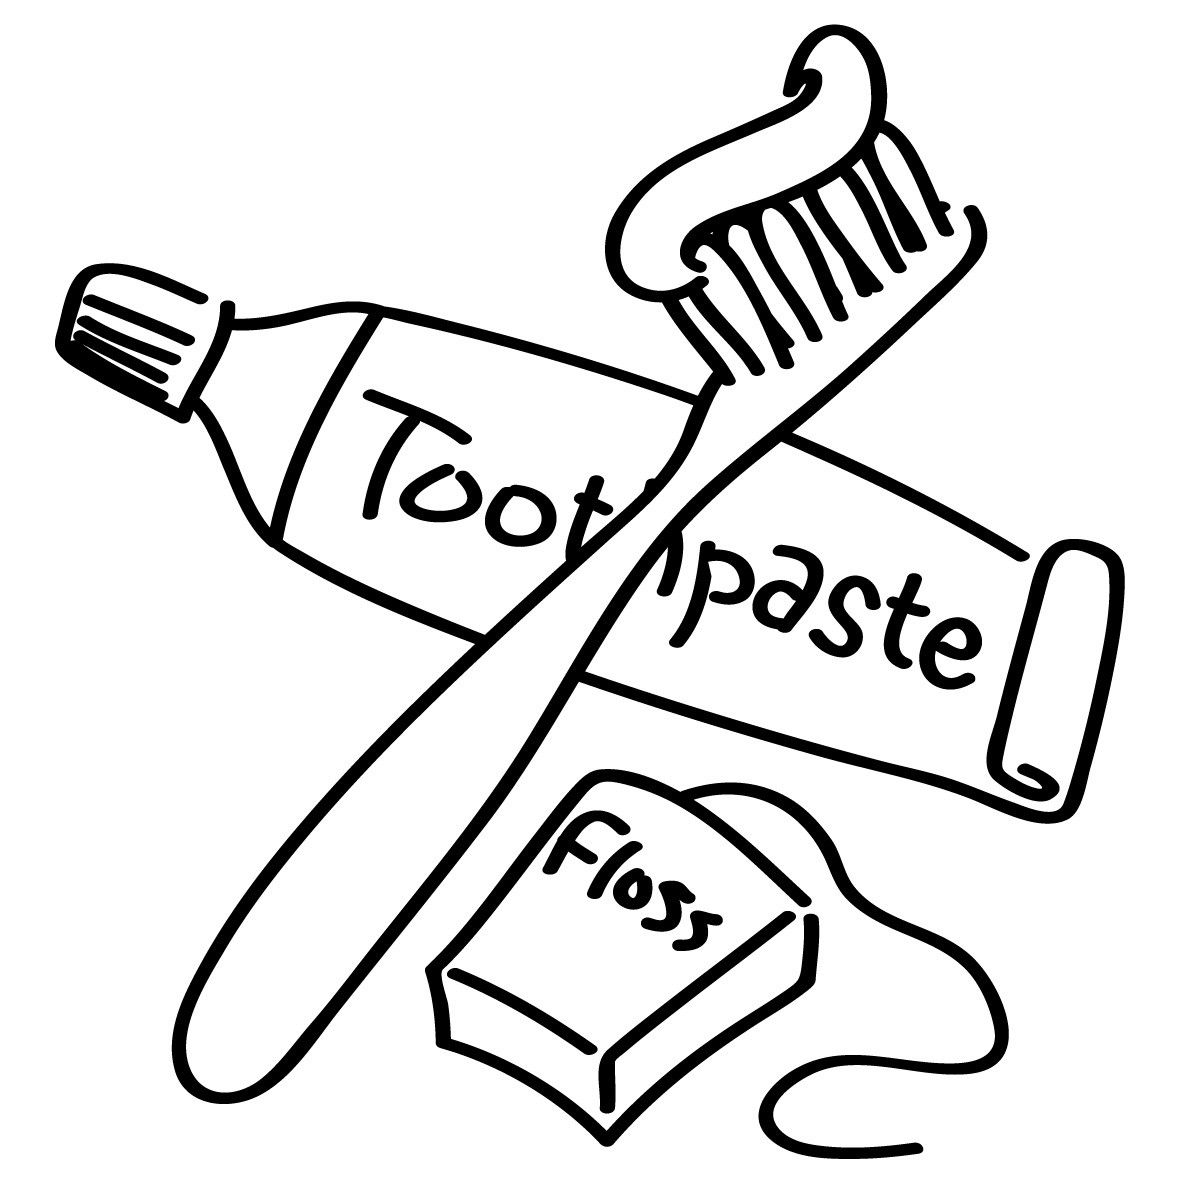 Dental Hygiene Coloring Pages For Kids Dental Hygiene Student